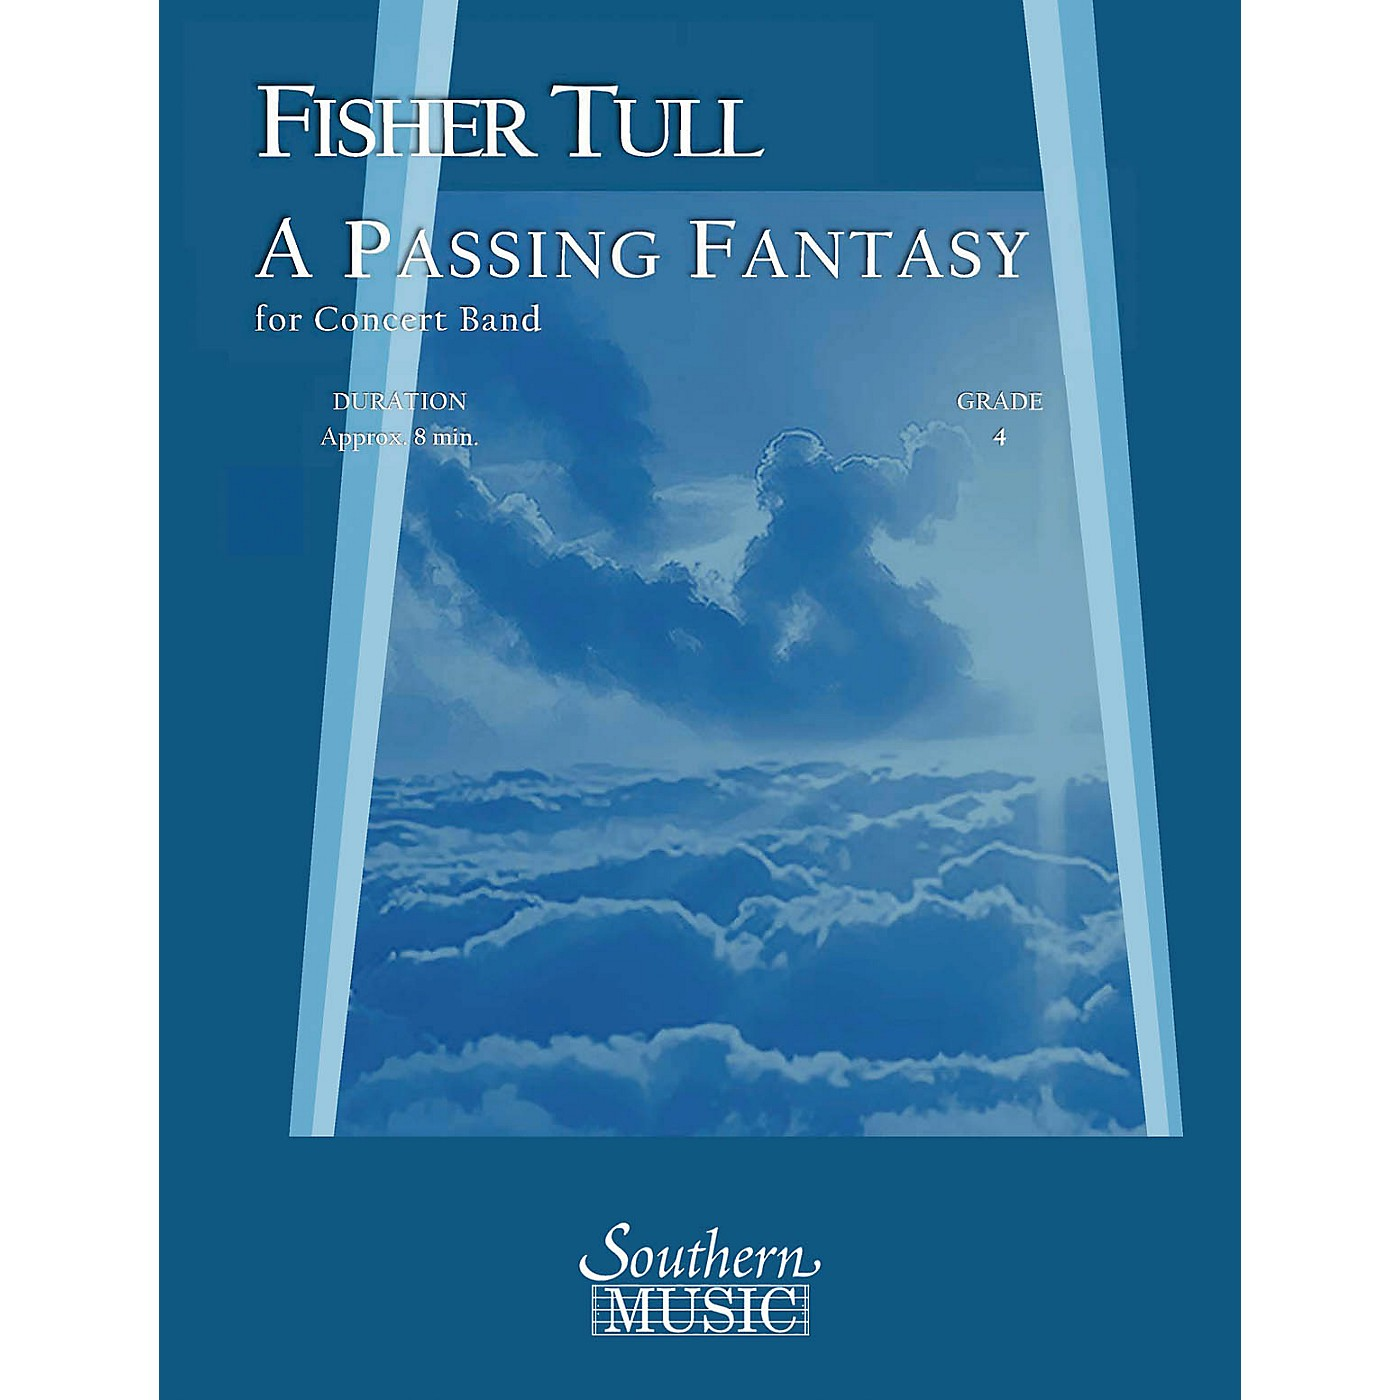 Southern A Passing Fantasy (Band/Concert Band Music) Concert Band Level 4 Composed by Fisher Tull thumbnail